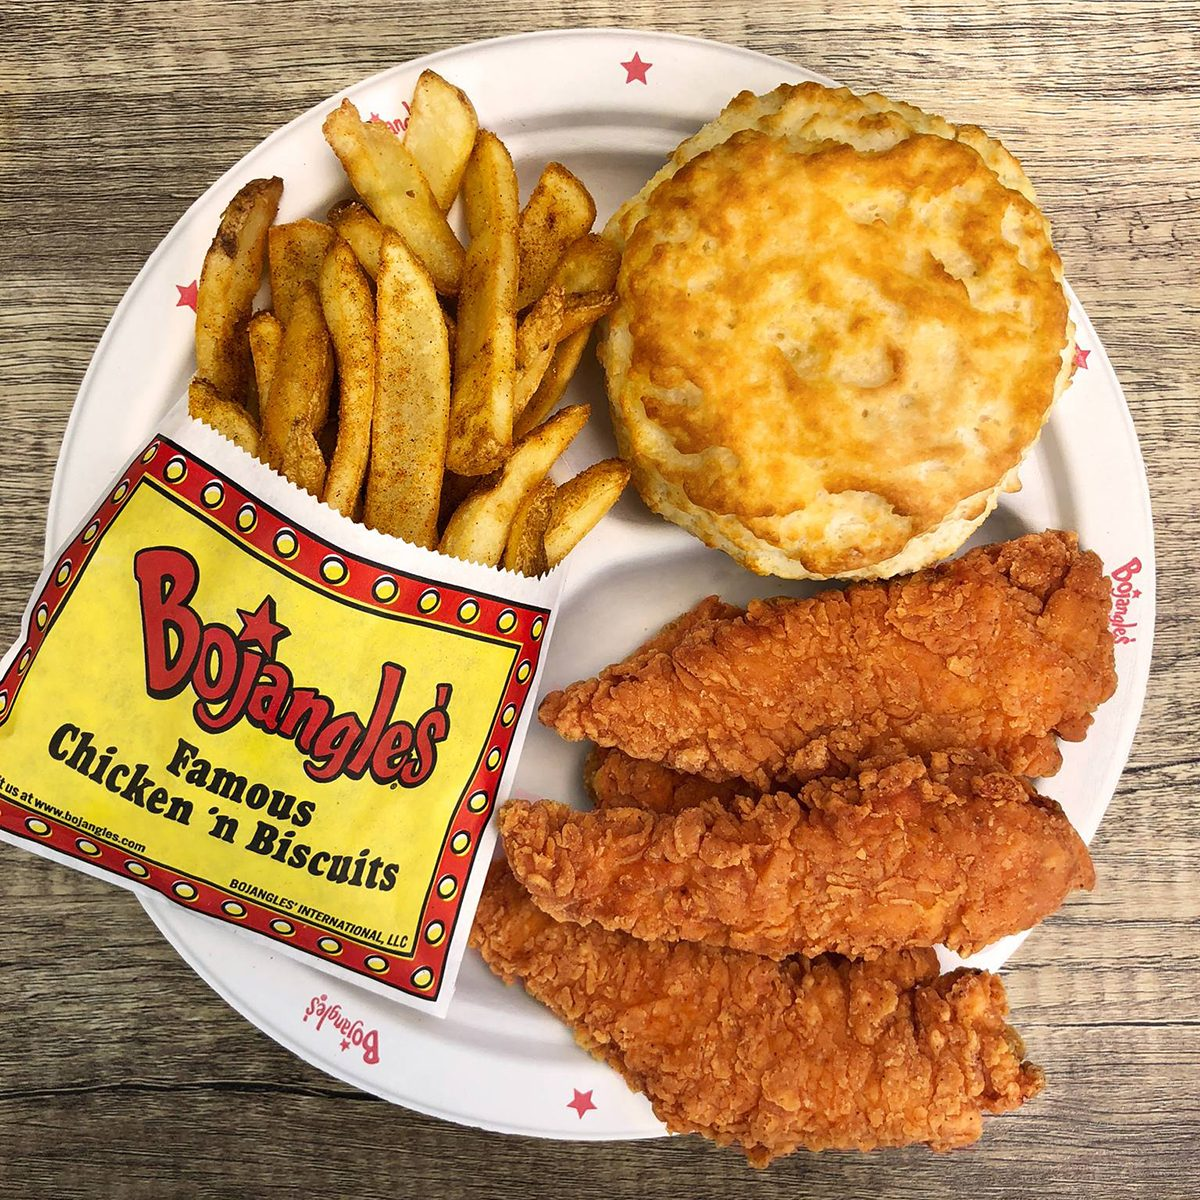 Bojangles' chicken strips, biscuit and fries